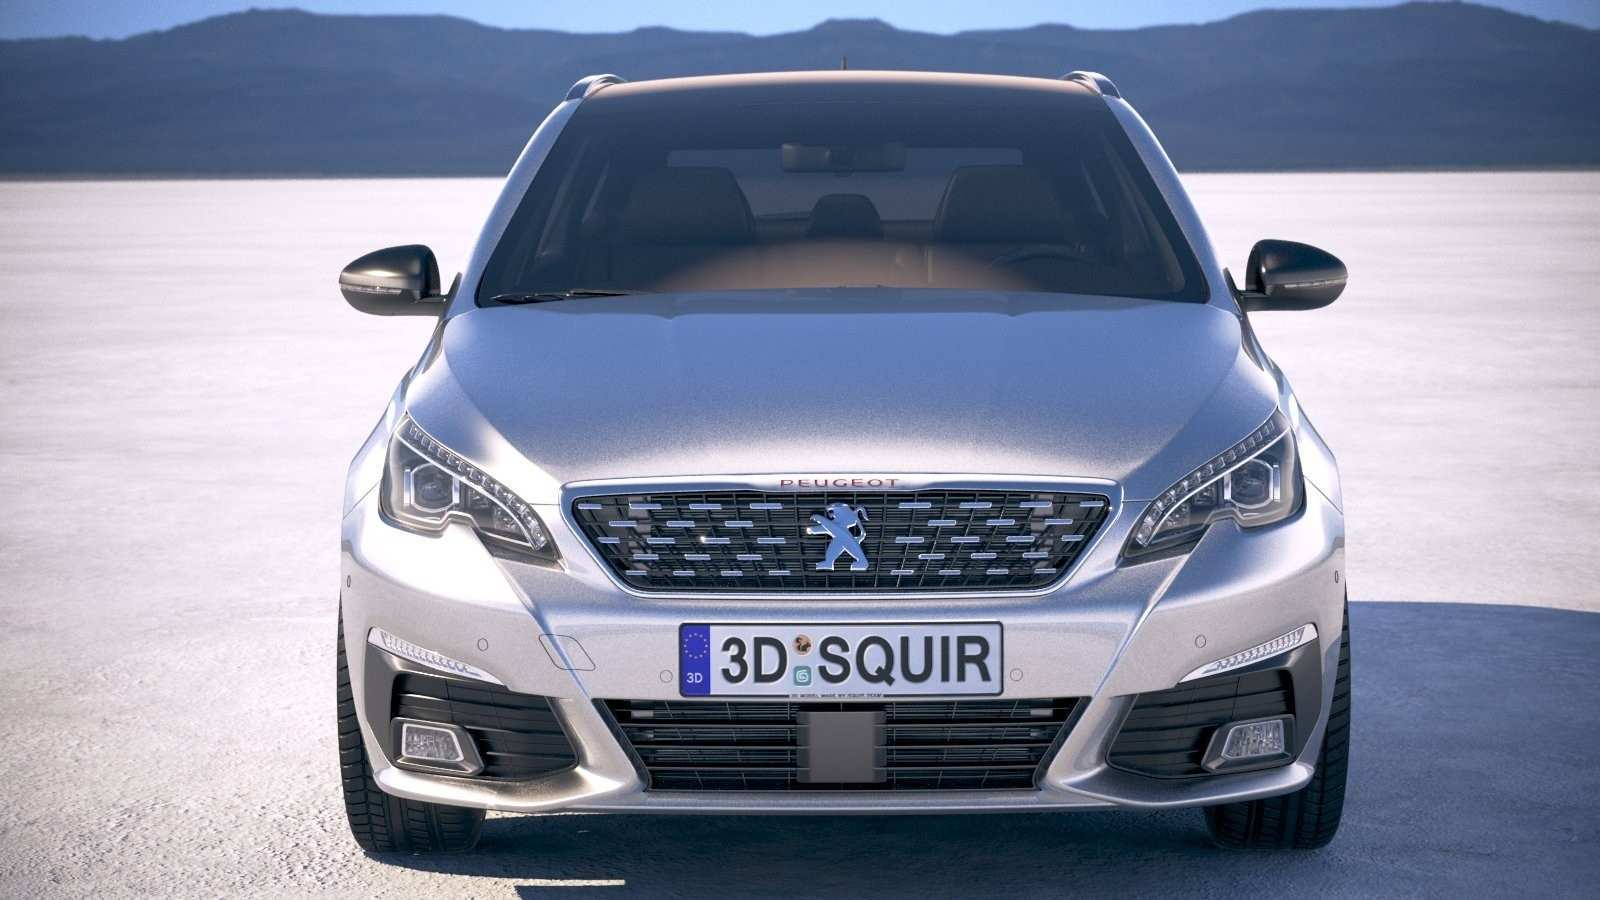 23 Gallery of 2019 Peugeot 308 Picture with 2019 Peugeot 308